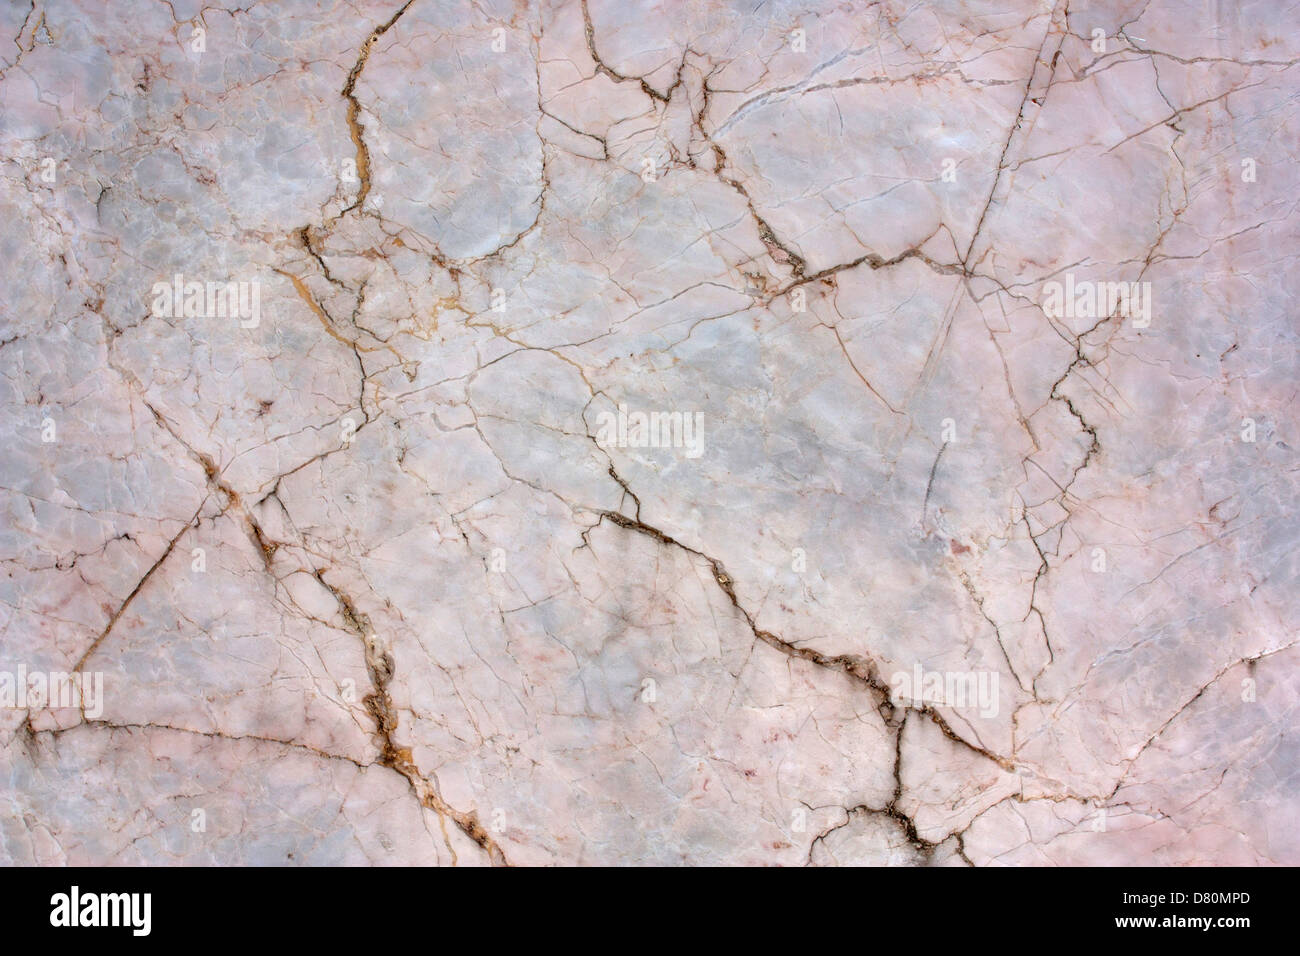 White Marble Background The Cracks High Resolution Stock Photography And Images Alamy